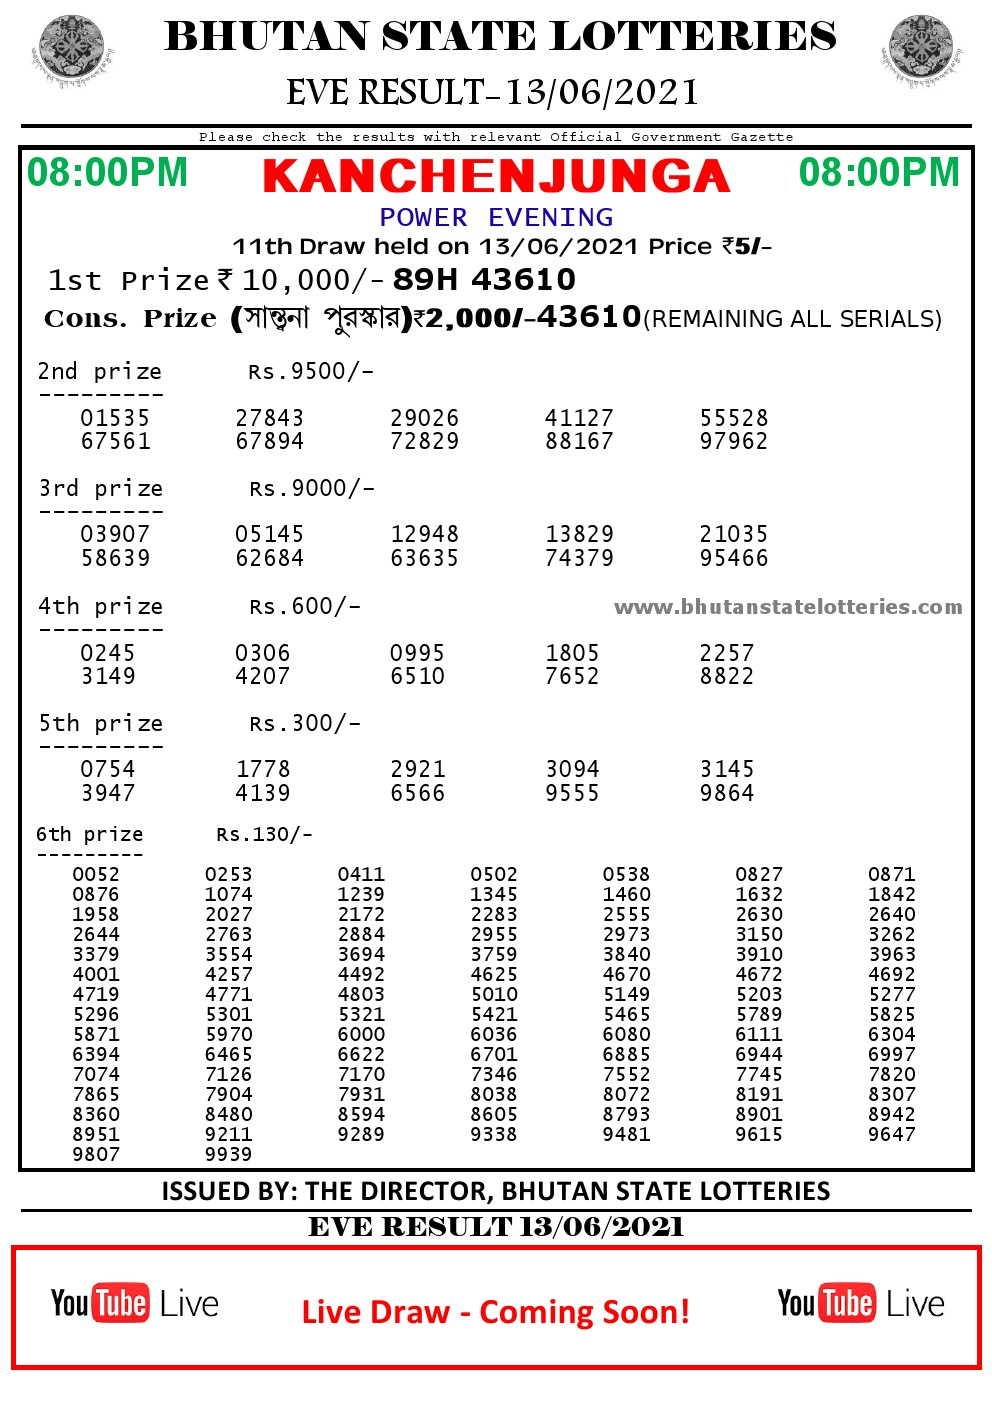 Bhutan Lottery Result 13.6.2021 Today evening 8pm PDF download